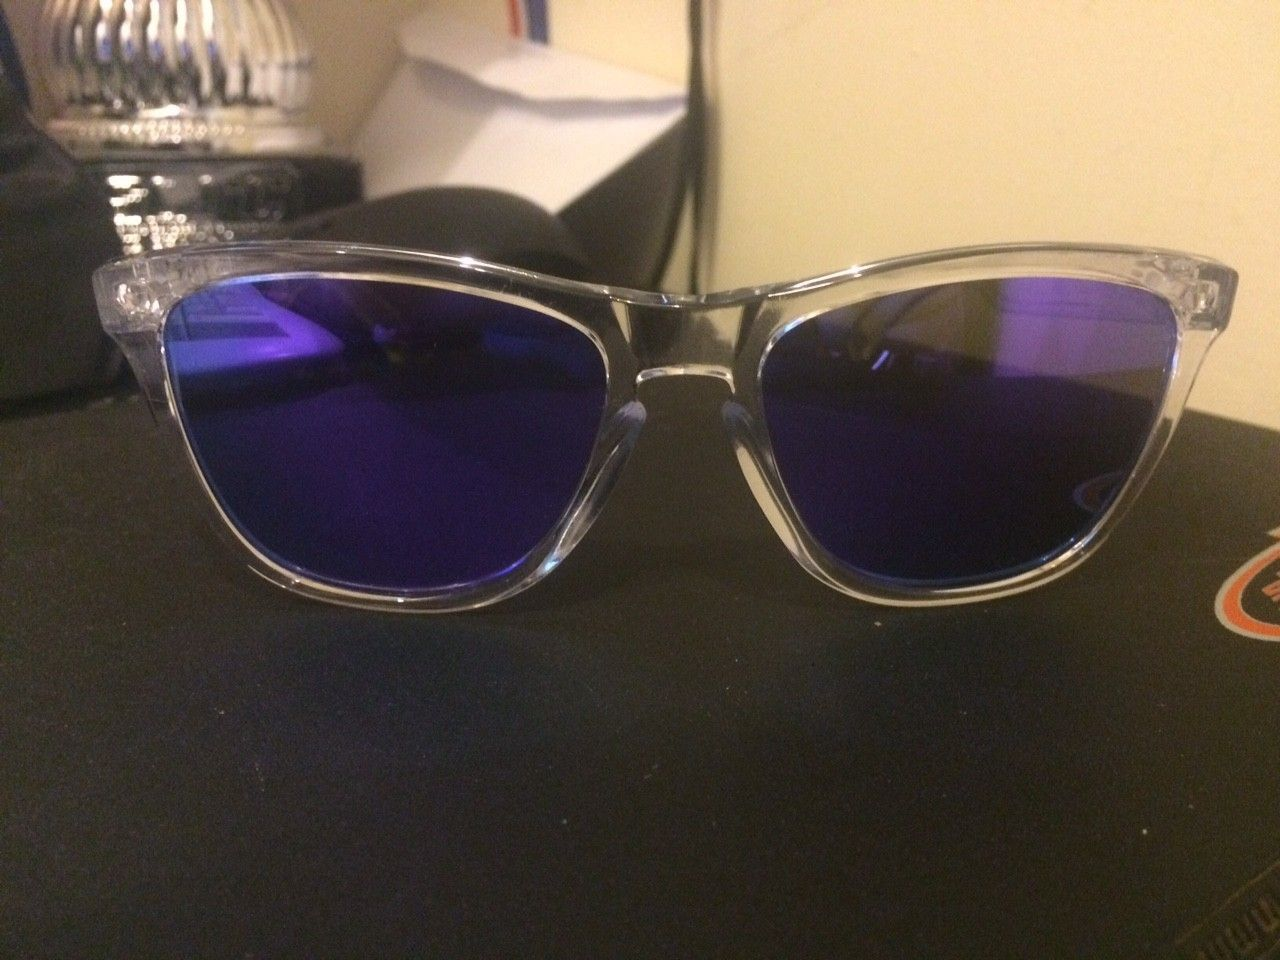 New Frogskins (unsure if fake!!) - IMG_0879.JPG